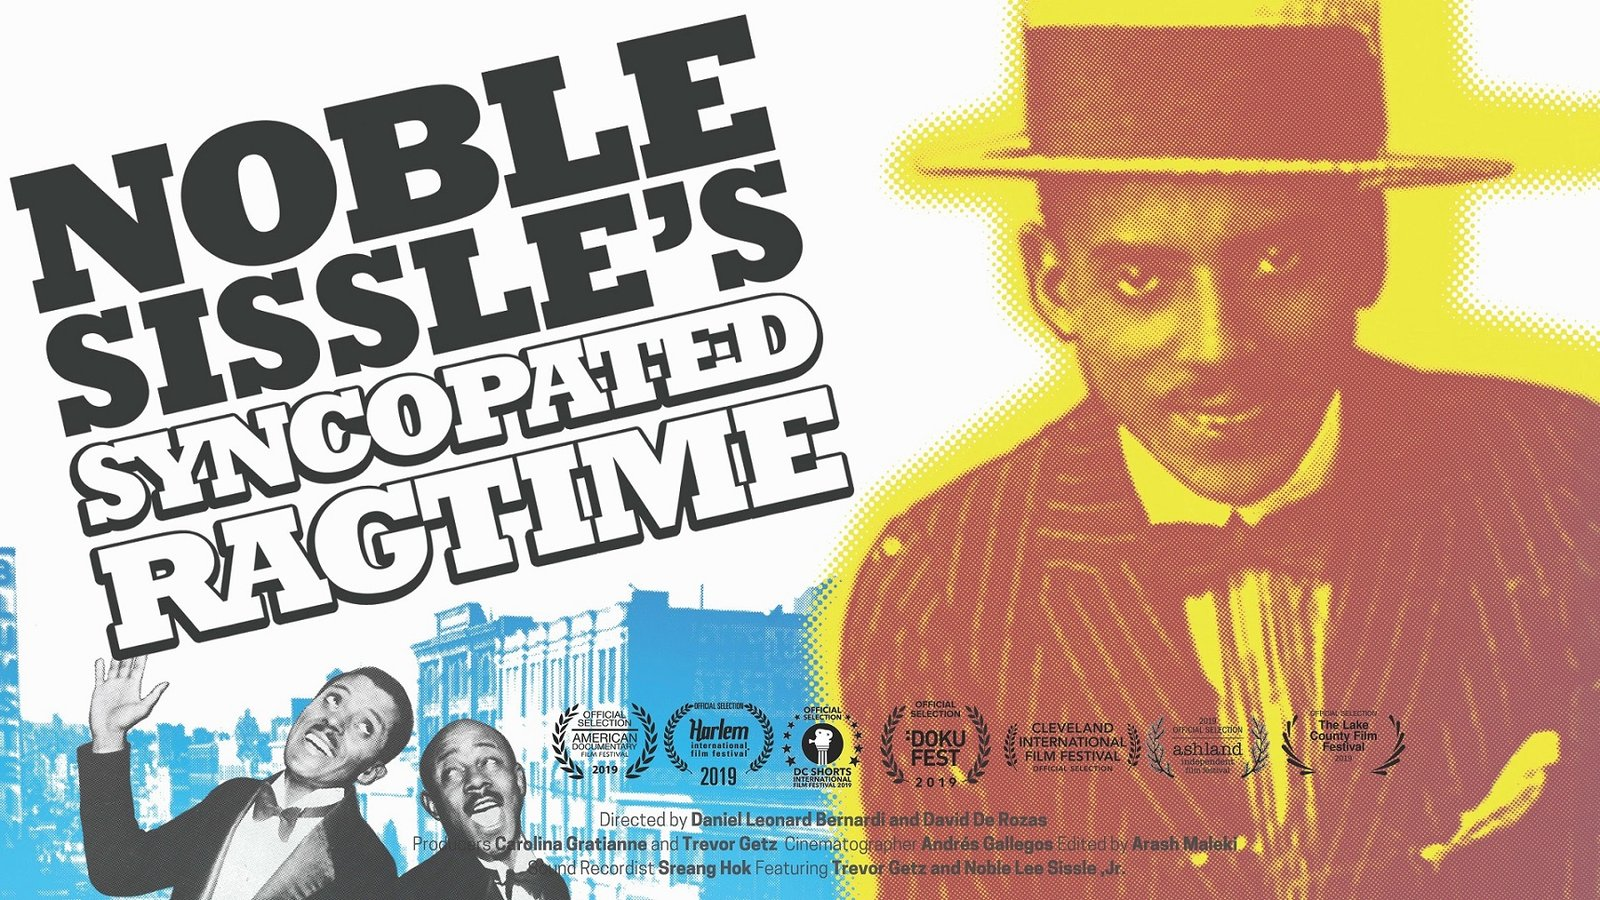 Noble Sissle's Syncopated Ragtime - The Story of Noble Sissle